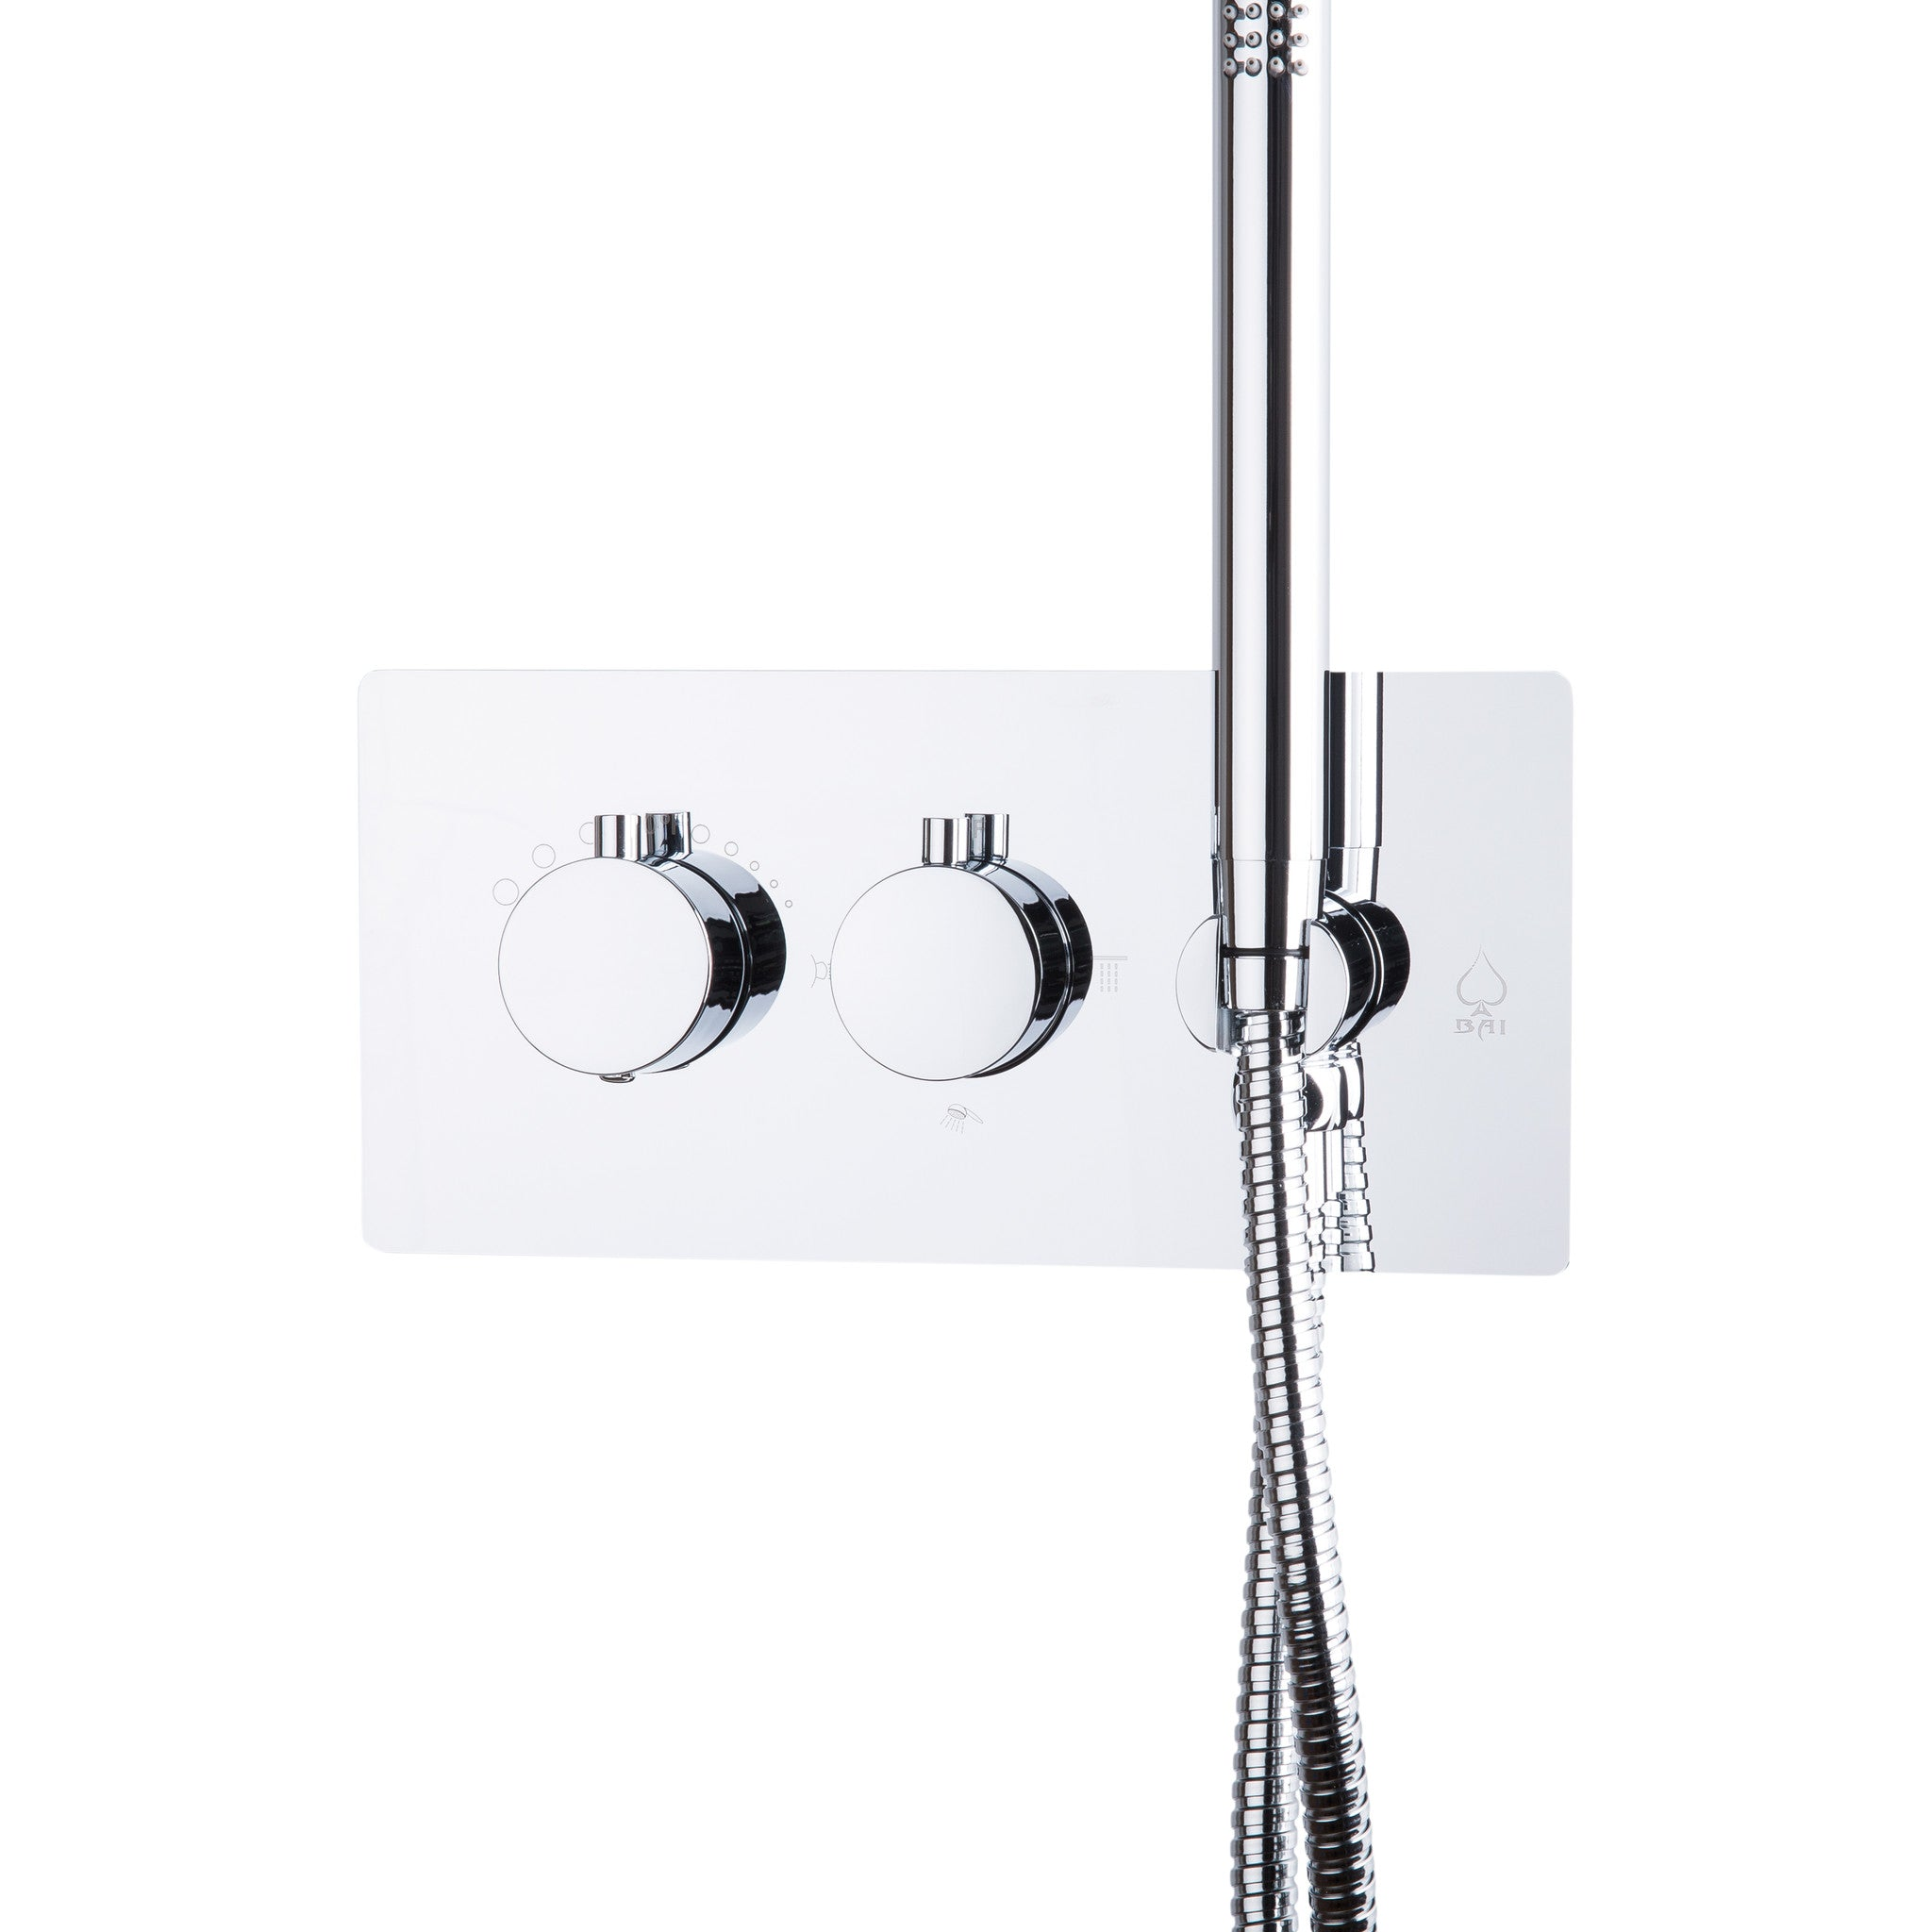 BAI 0112 Concealed Thermostatic Shower Mixer / Valve With Handheld Wand 2 3  Functions (Round Knobs)